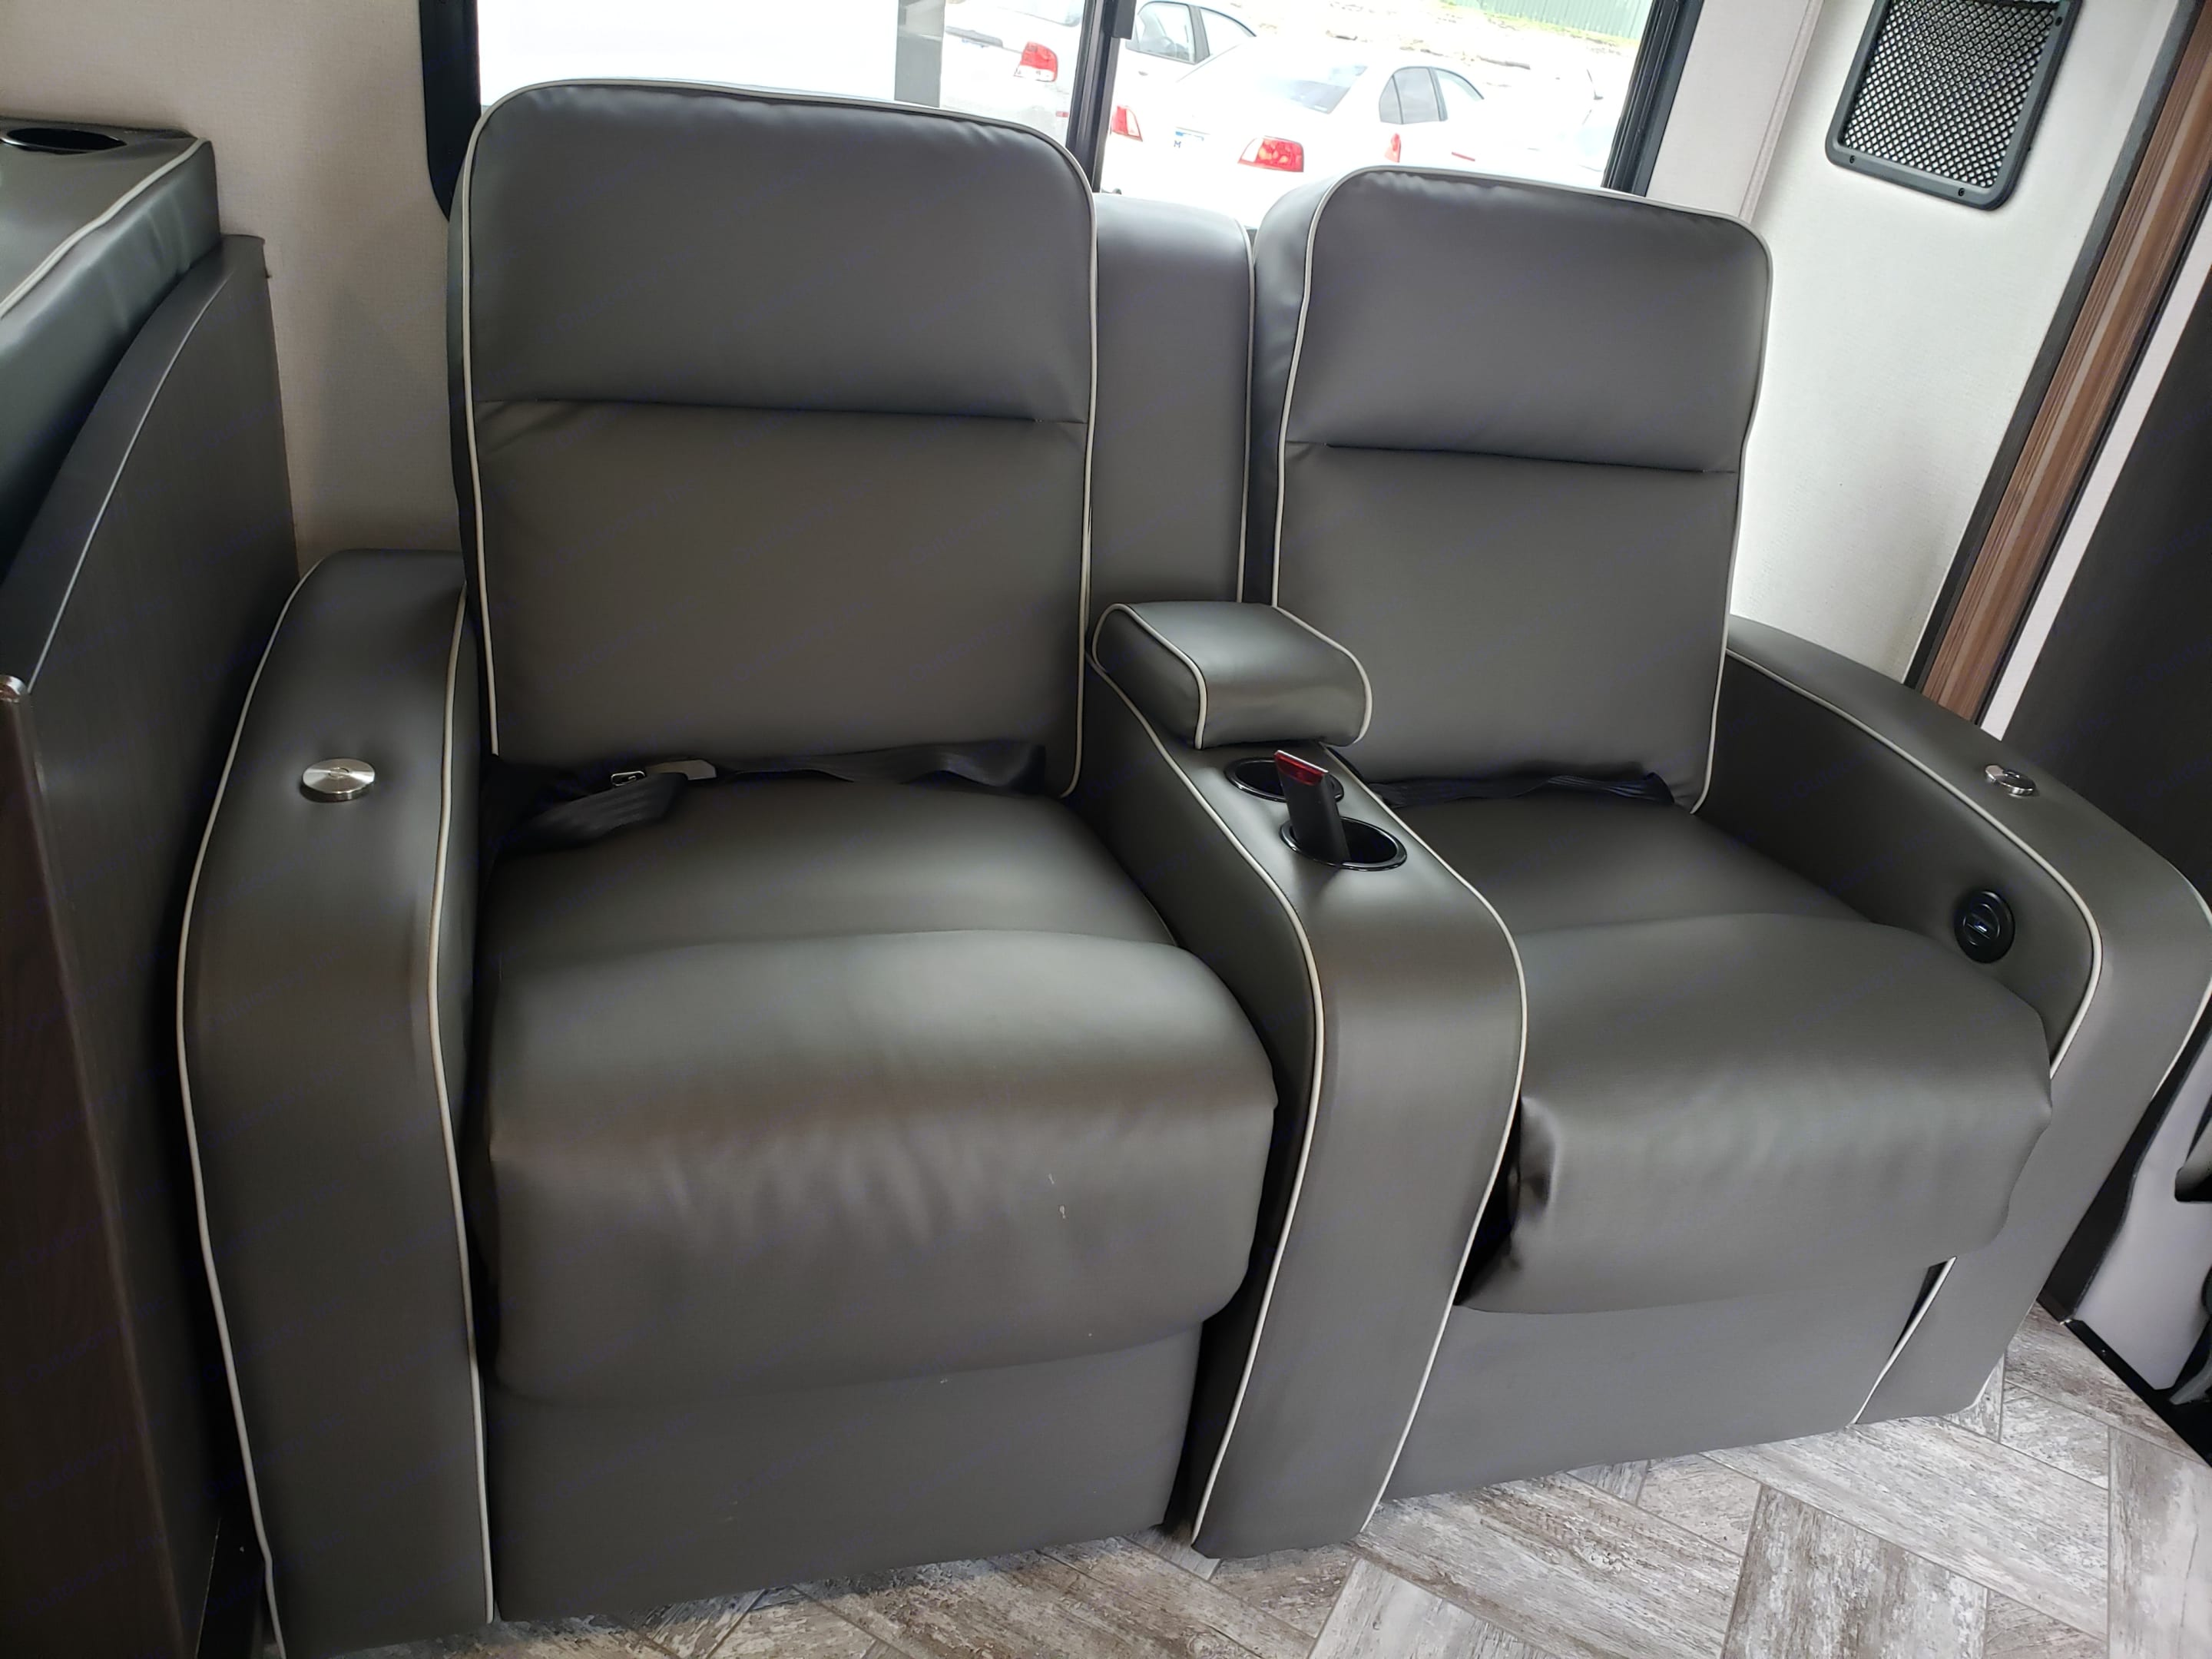 SS3010 Theatre Seat Reclining Captain Chairs. Forest River Sunseeker 2021